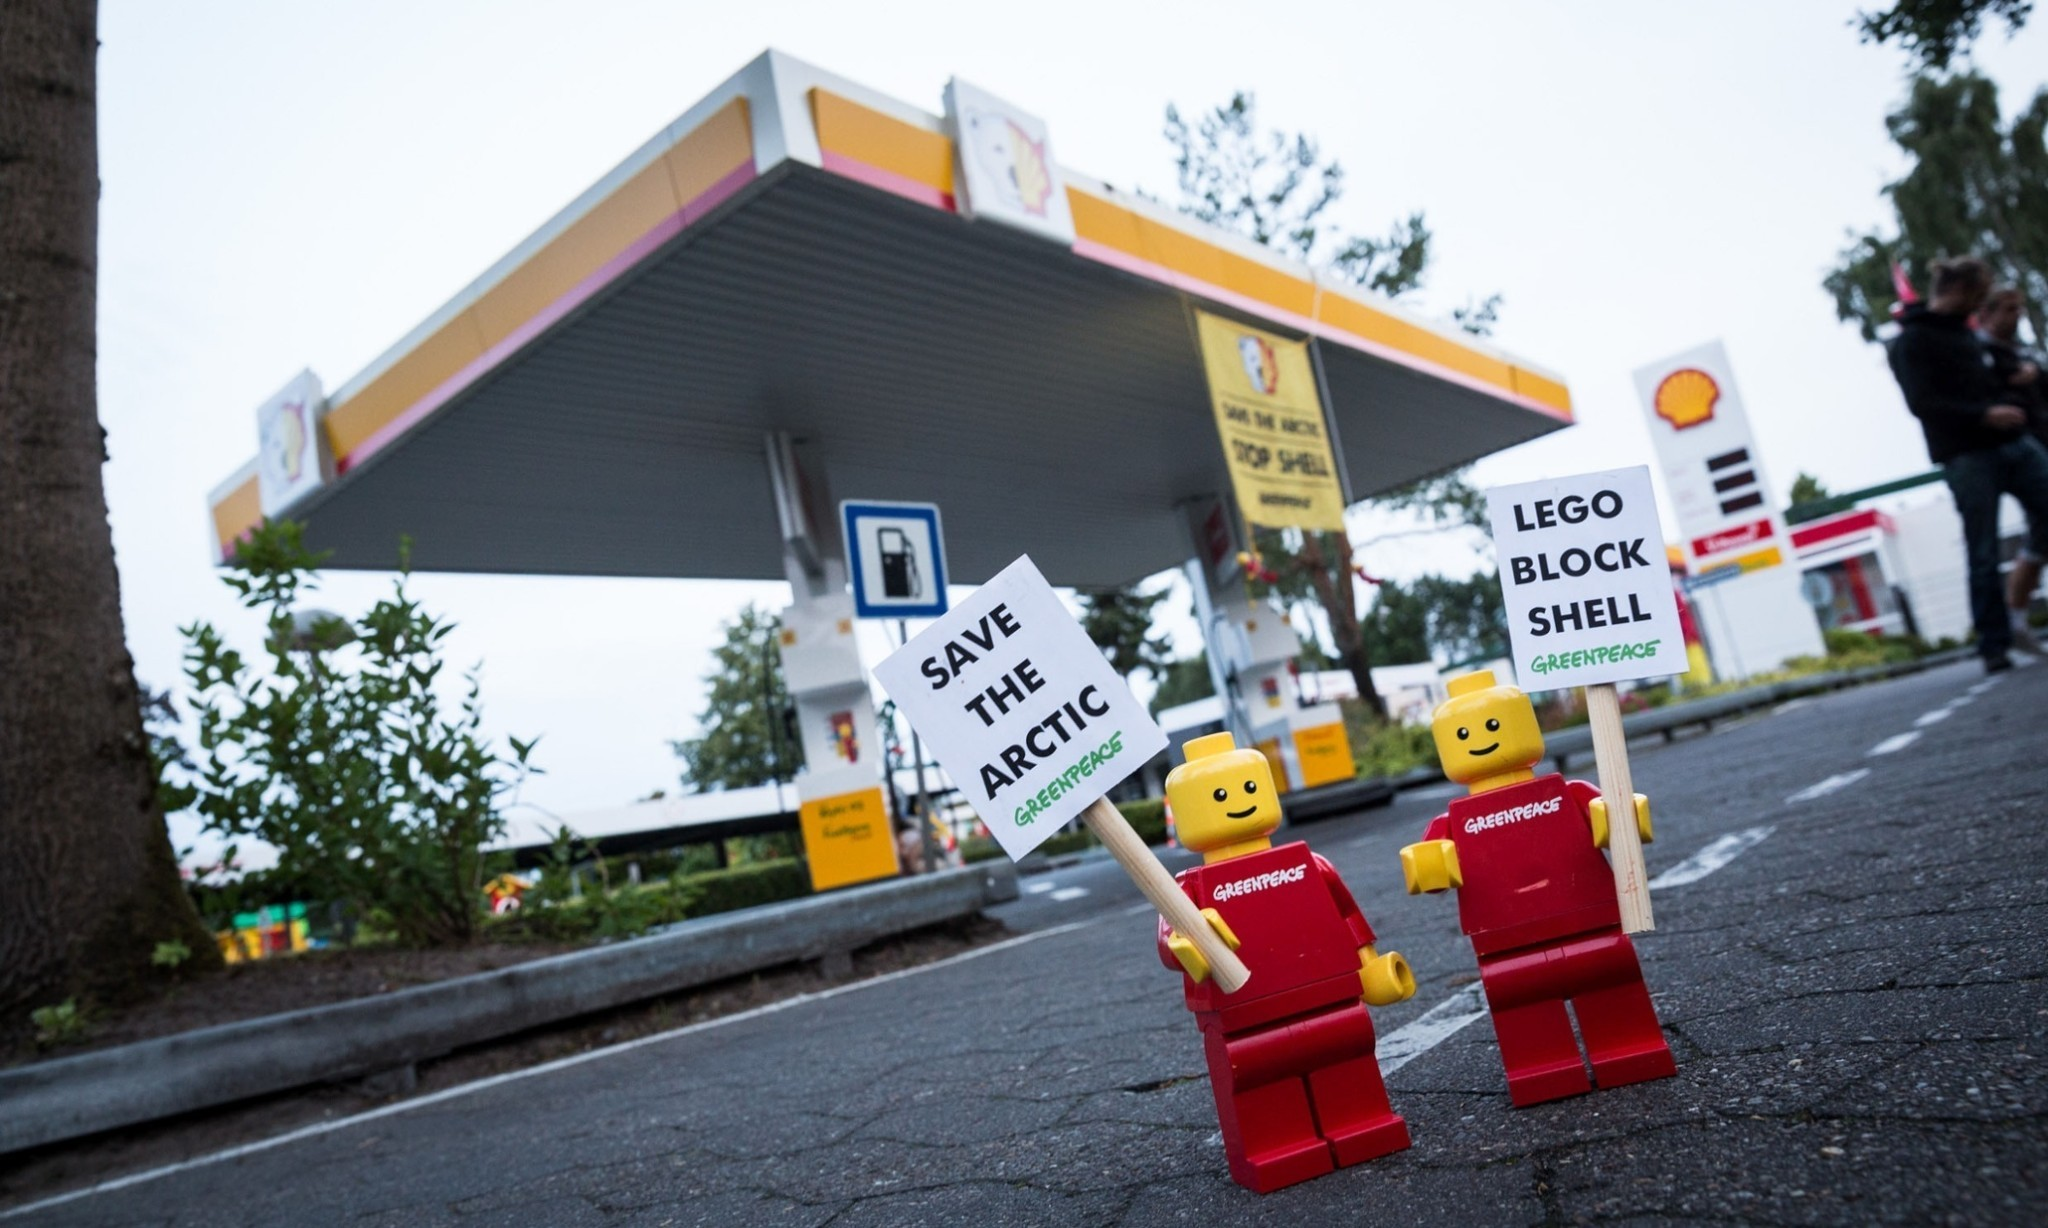 Lego ends Shell partnership following Greenpeace campaign